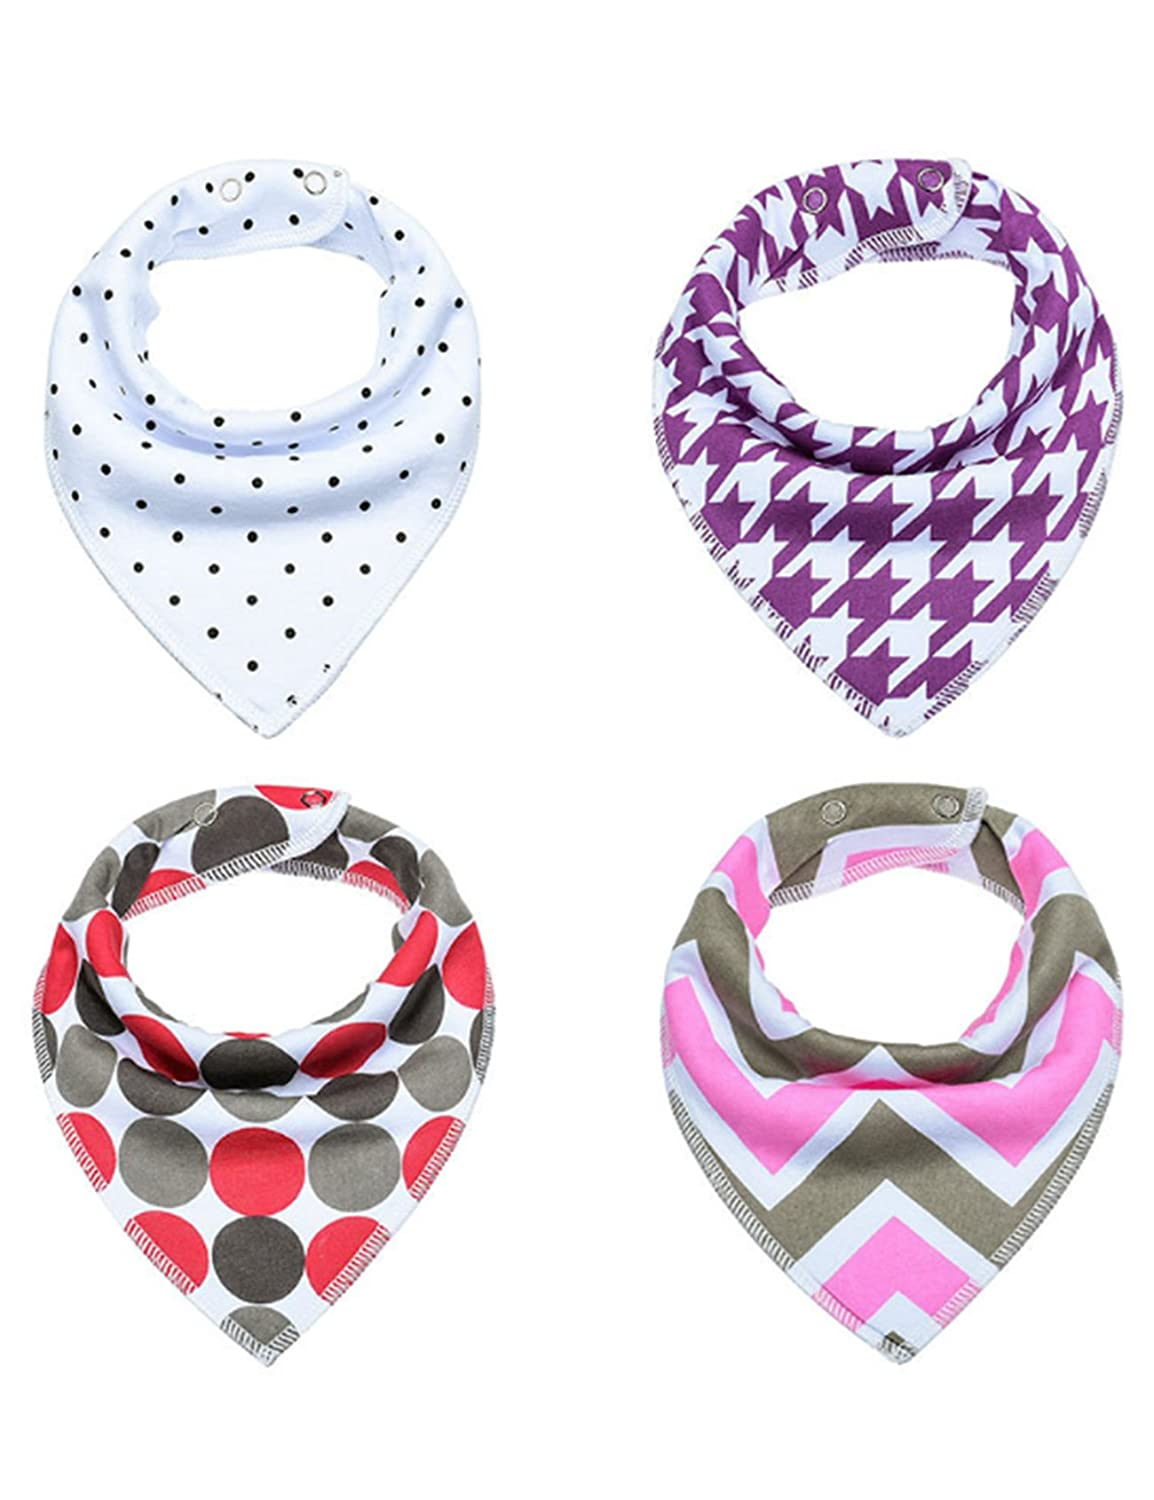 newrong Baby Cotton Drool Bibs Bandana Adjustable Snap 26 Pack One Size Picture Color22